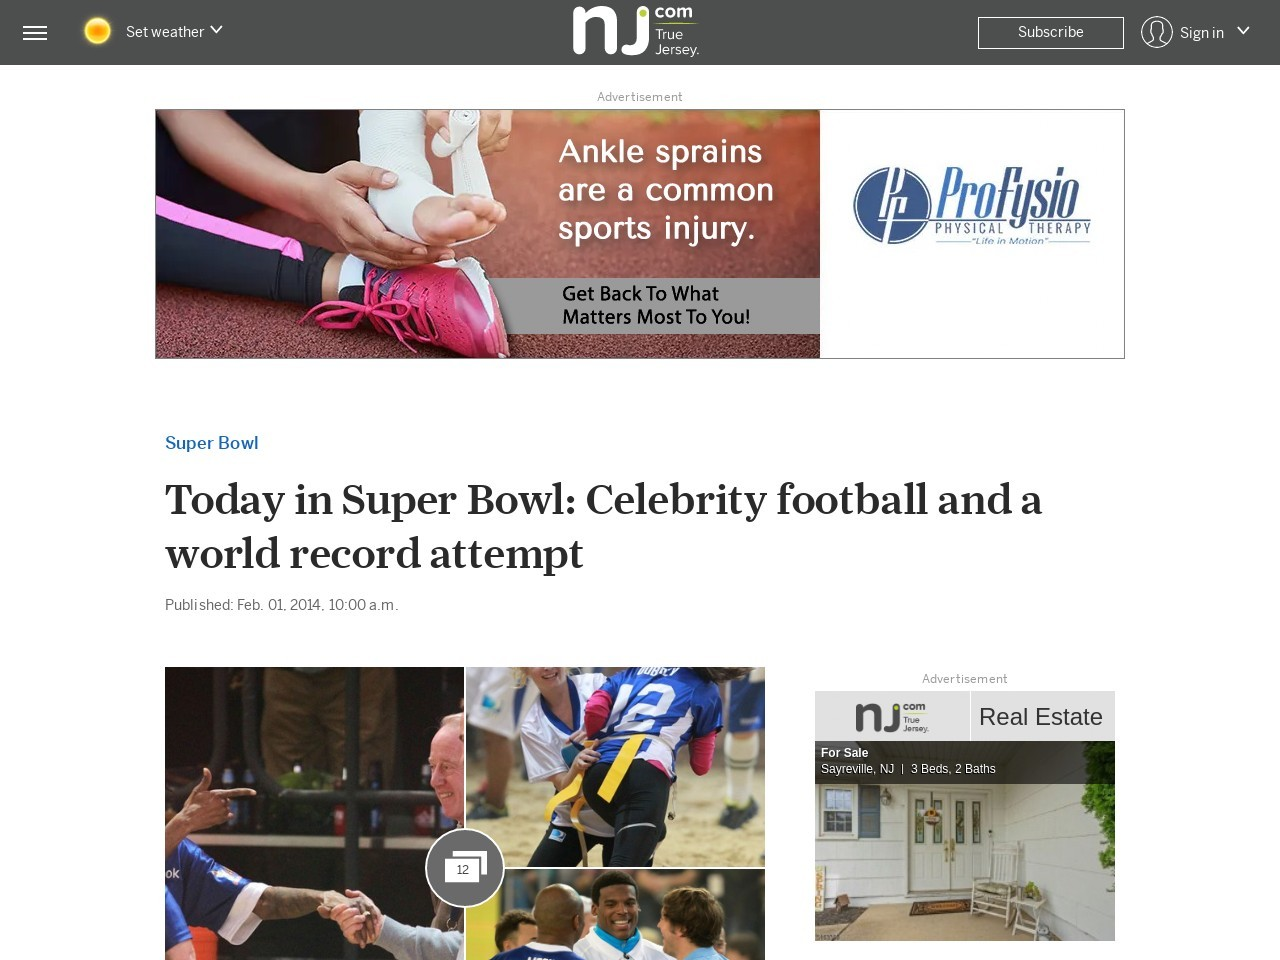 Today in Super Bowl: Celebrity football and a world record attempt